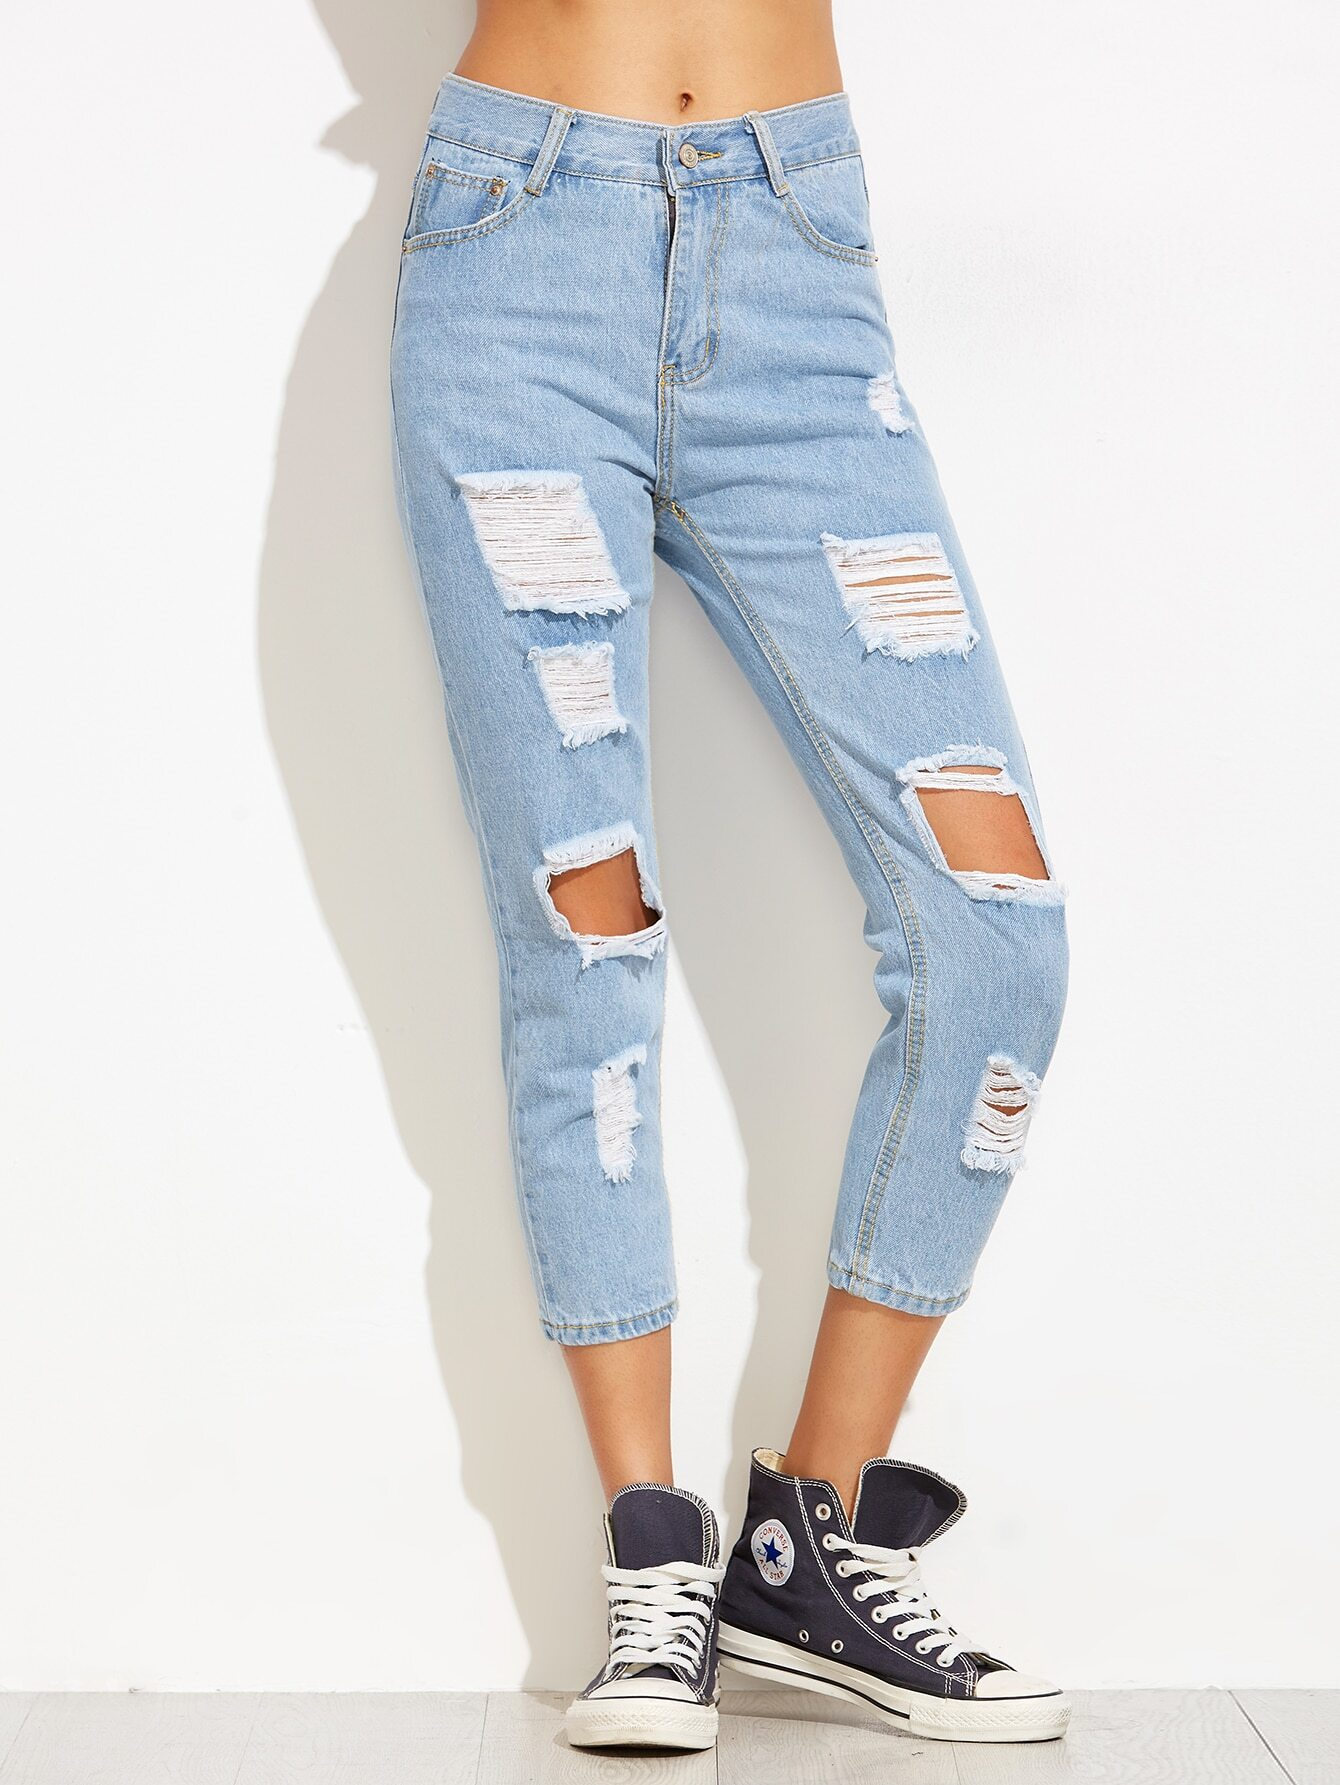 Blue Distressed Ankle JeansBlue Distressed Ankle Jeans<br><br>color: Blue<br>size: S,XL